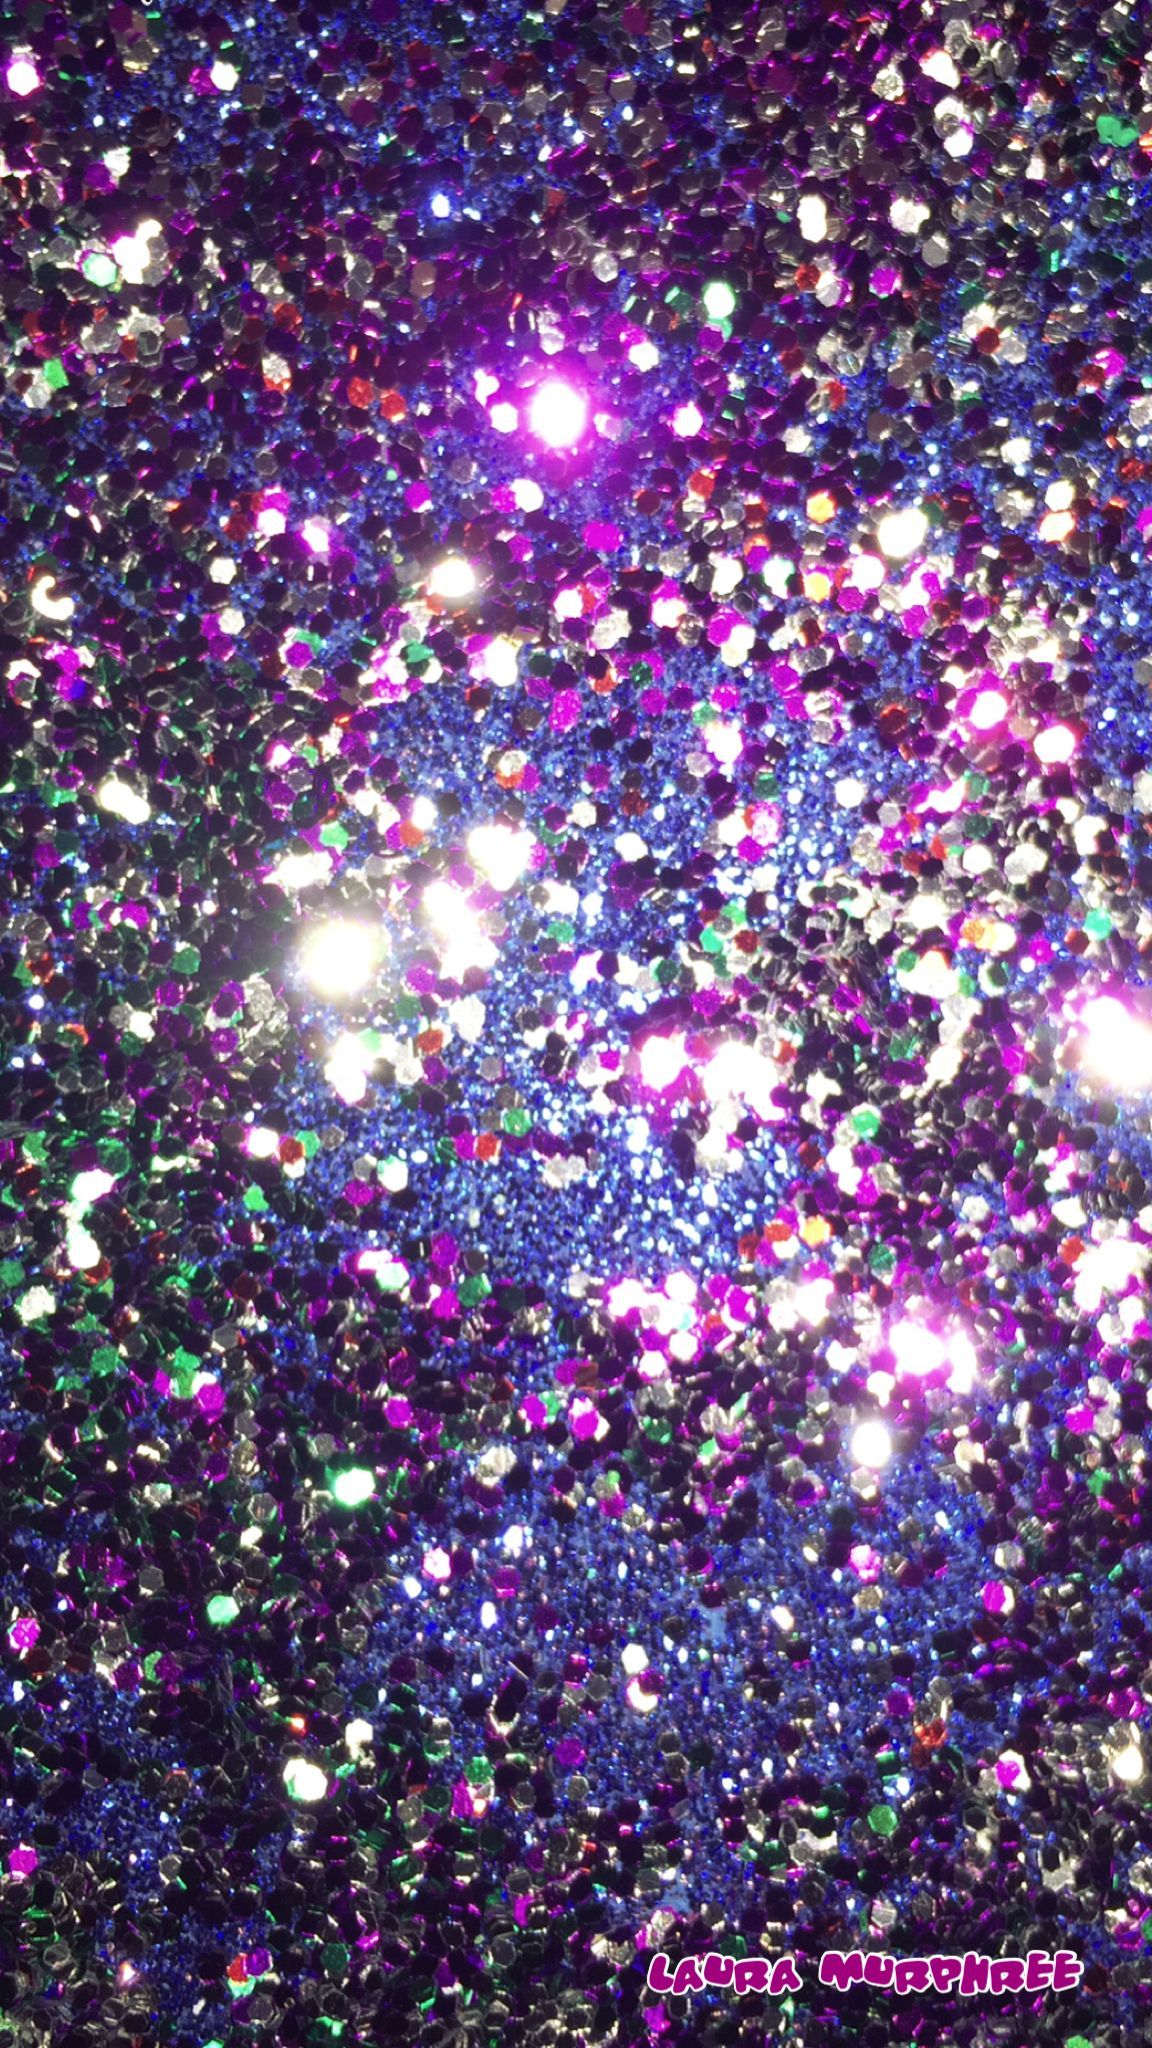 Colorful Glitter Phone Wallpaper Sparkling Background Sparkle Glittery Girly Pretty Glitterf Glitter Phone Wallpaper Iphone Wallpaper Girly Glitter Background